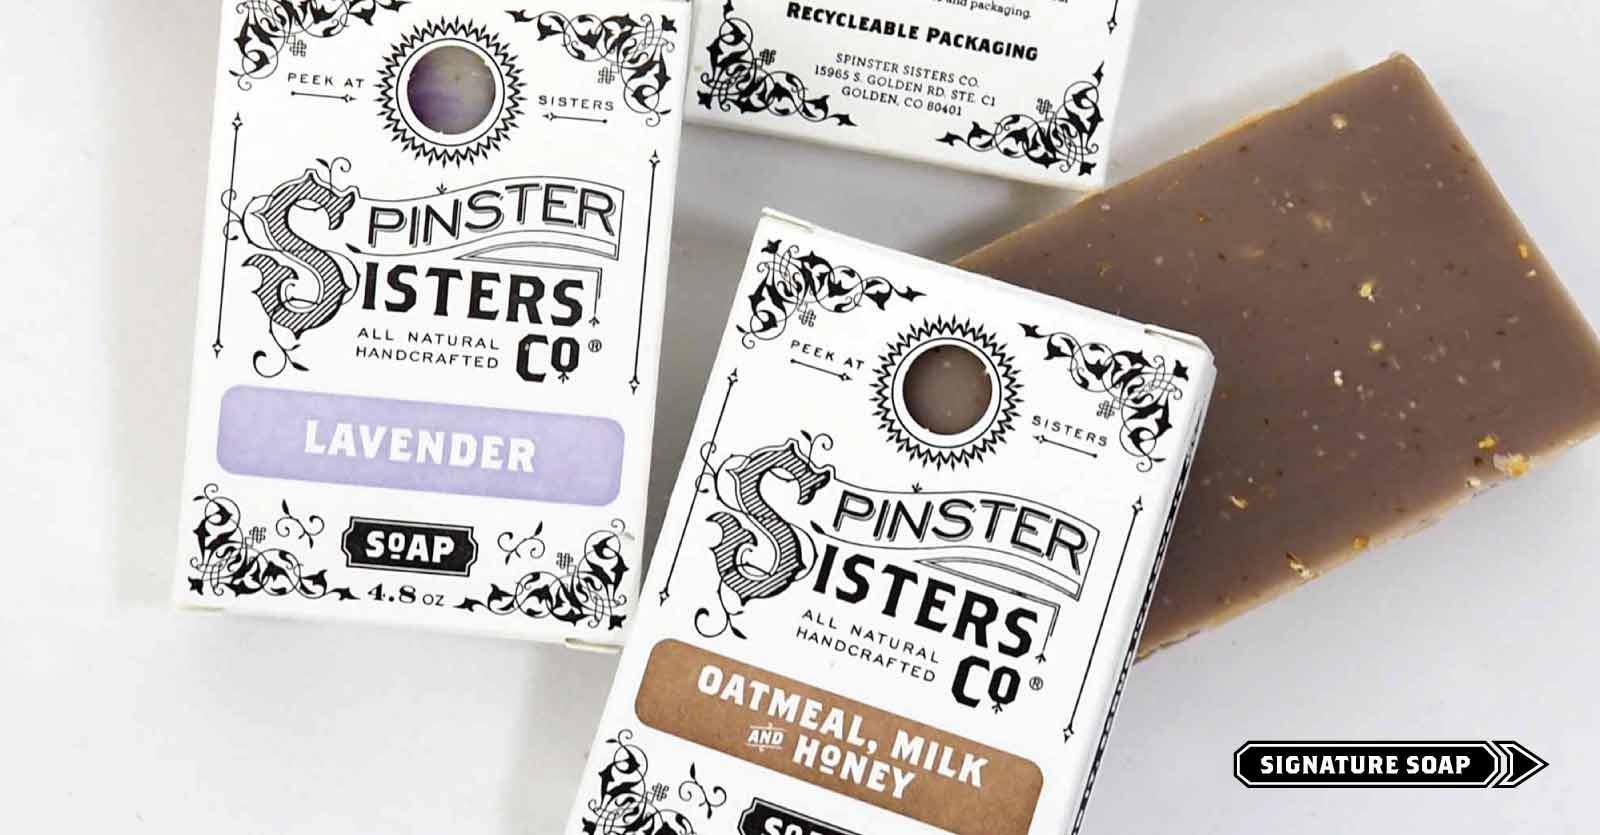 Spinster Sisters Co Colorado Natural Soaps And Lotions